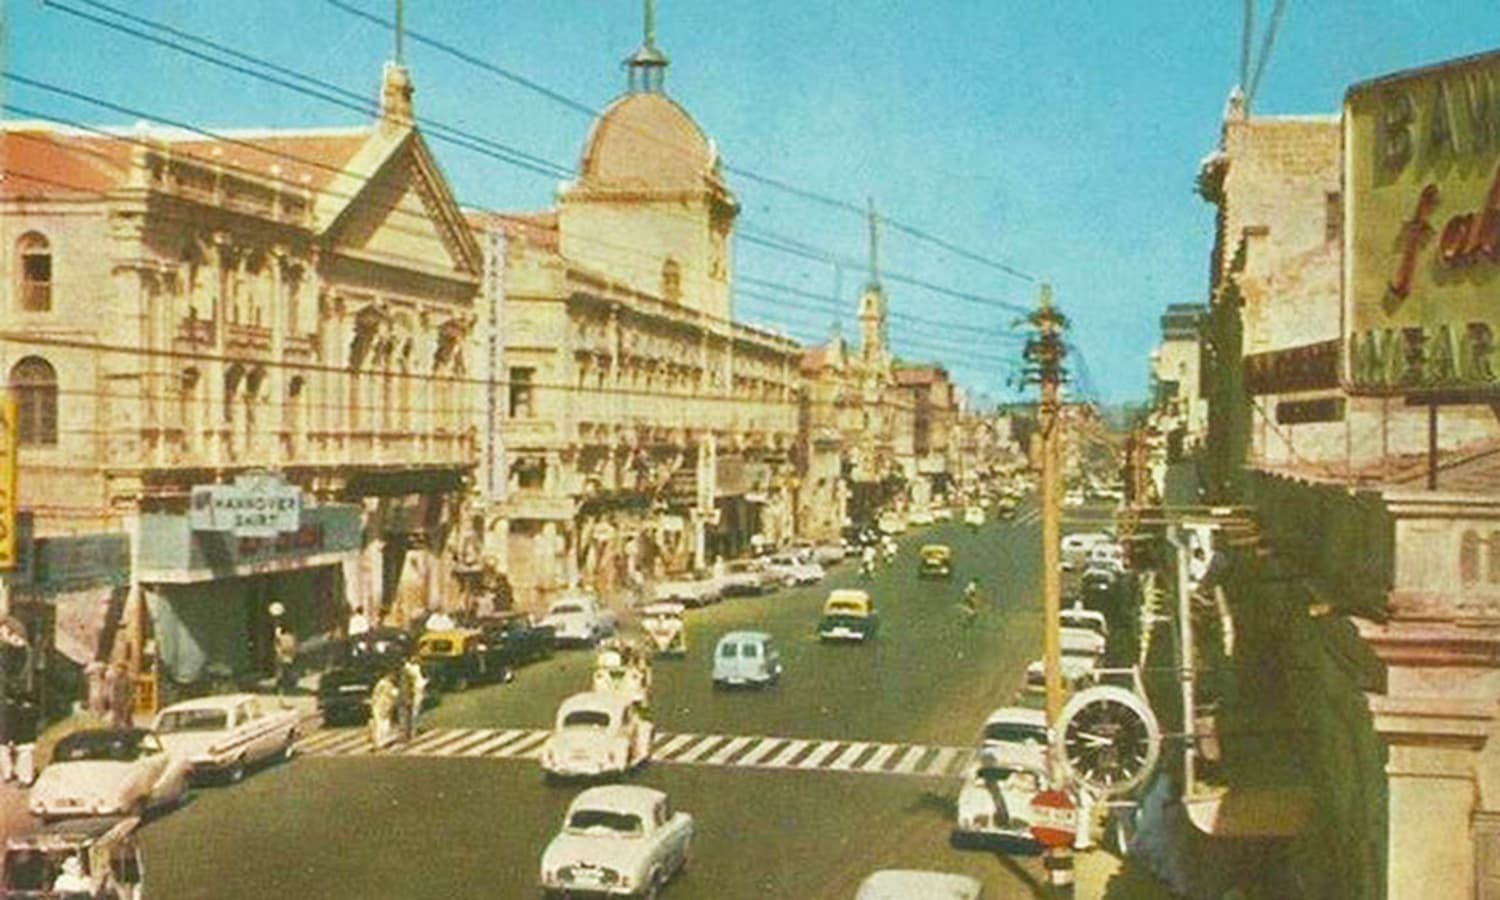 Victoria Road in 1965. It was famous for trendy shops, restaurants, nightclubs and bars. (Photo: National Geographic)